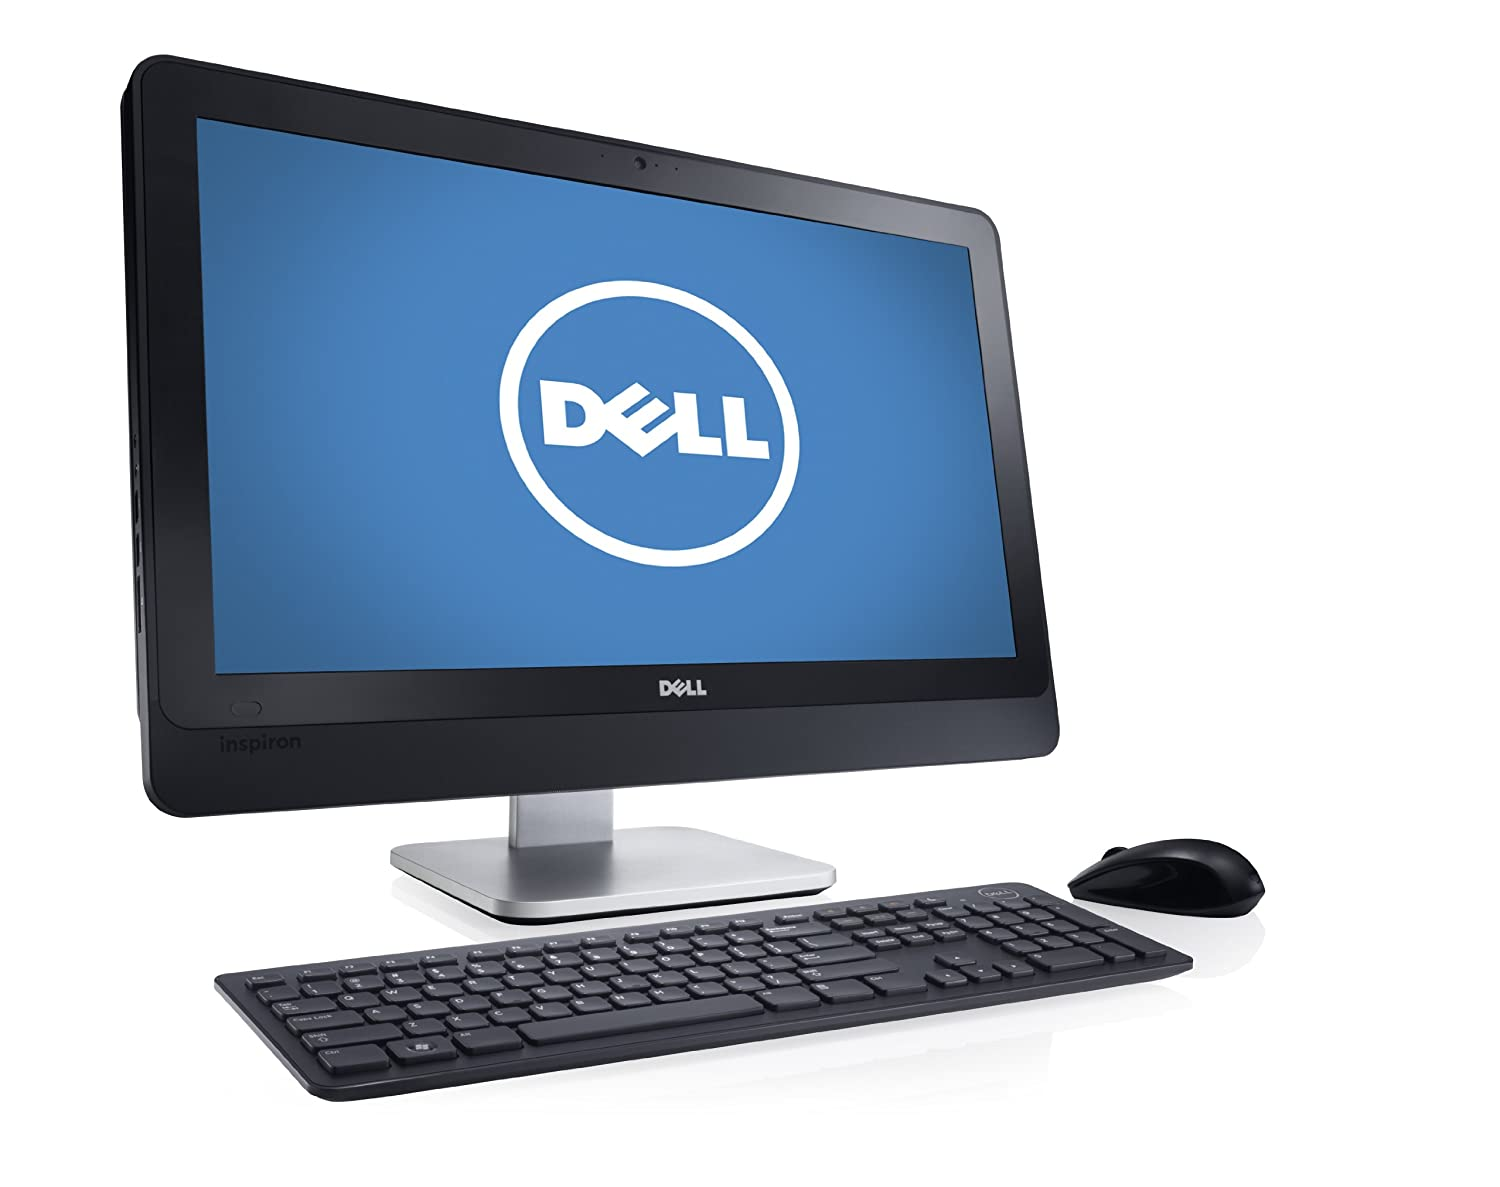 Dell Inspiron One 2330 io2330-2273BK 23-Inch All-in-One Desktop